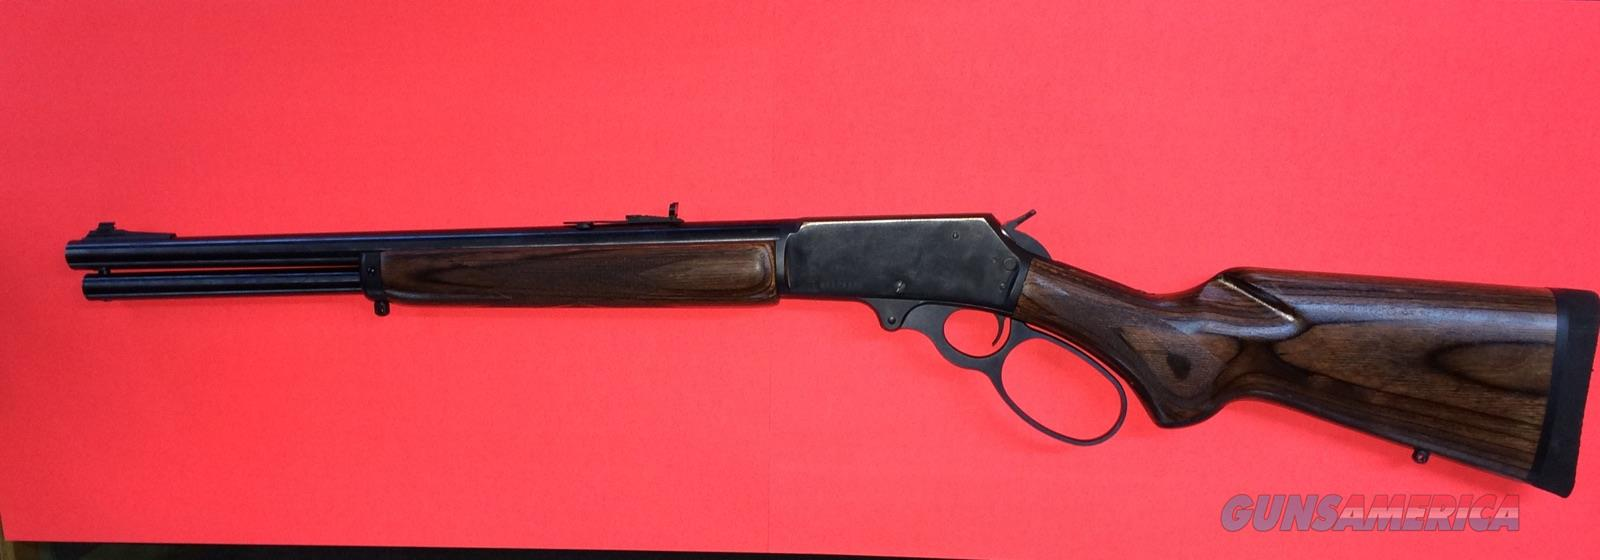 MARLIN 1895 LEVER ACTION 45-70***EXCEPTIONAL CONDITION***  Guns > Rifles > Marlin Rifles > Modern > Lever Action